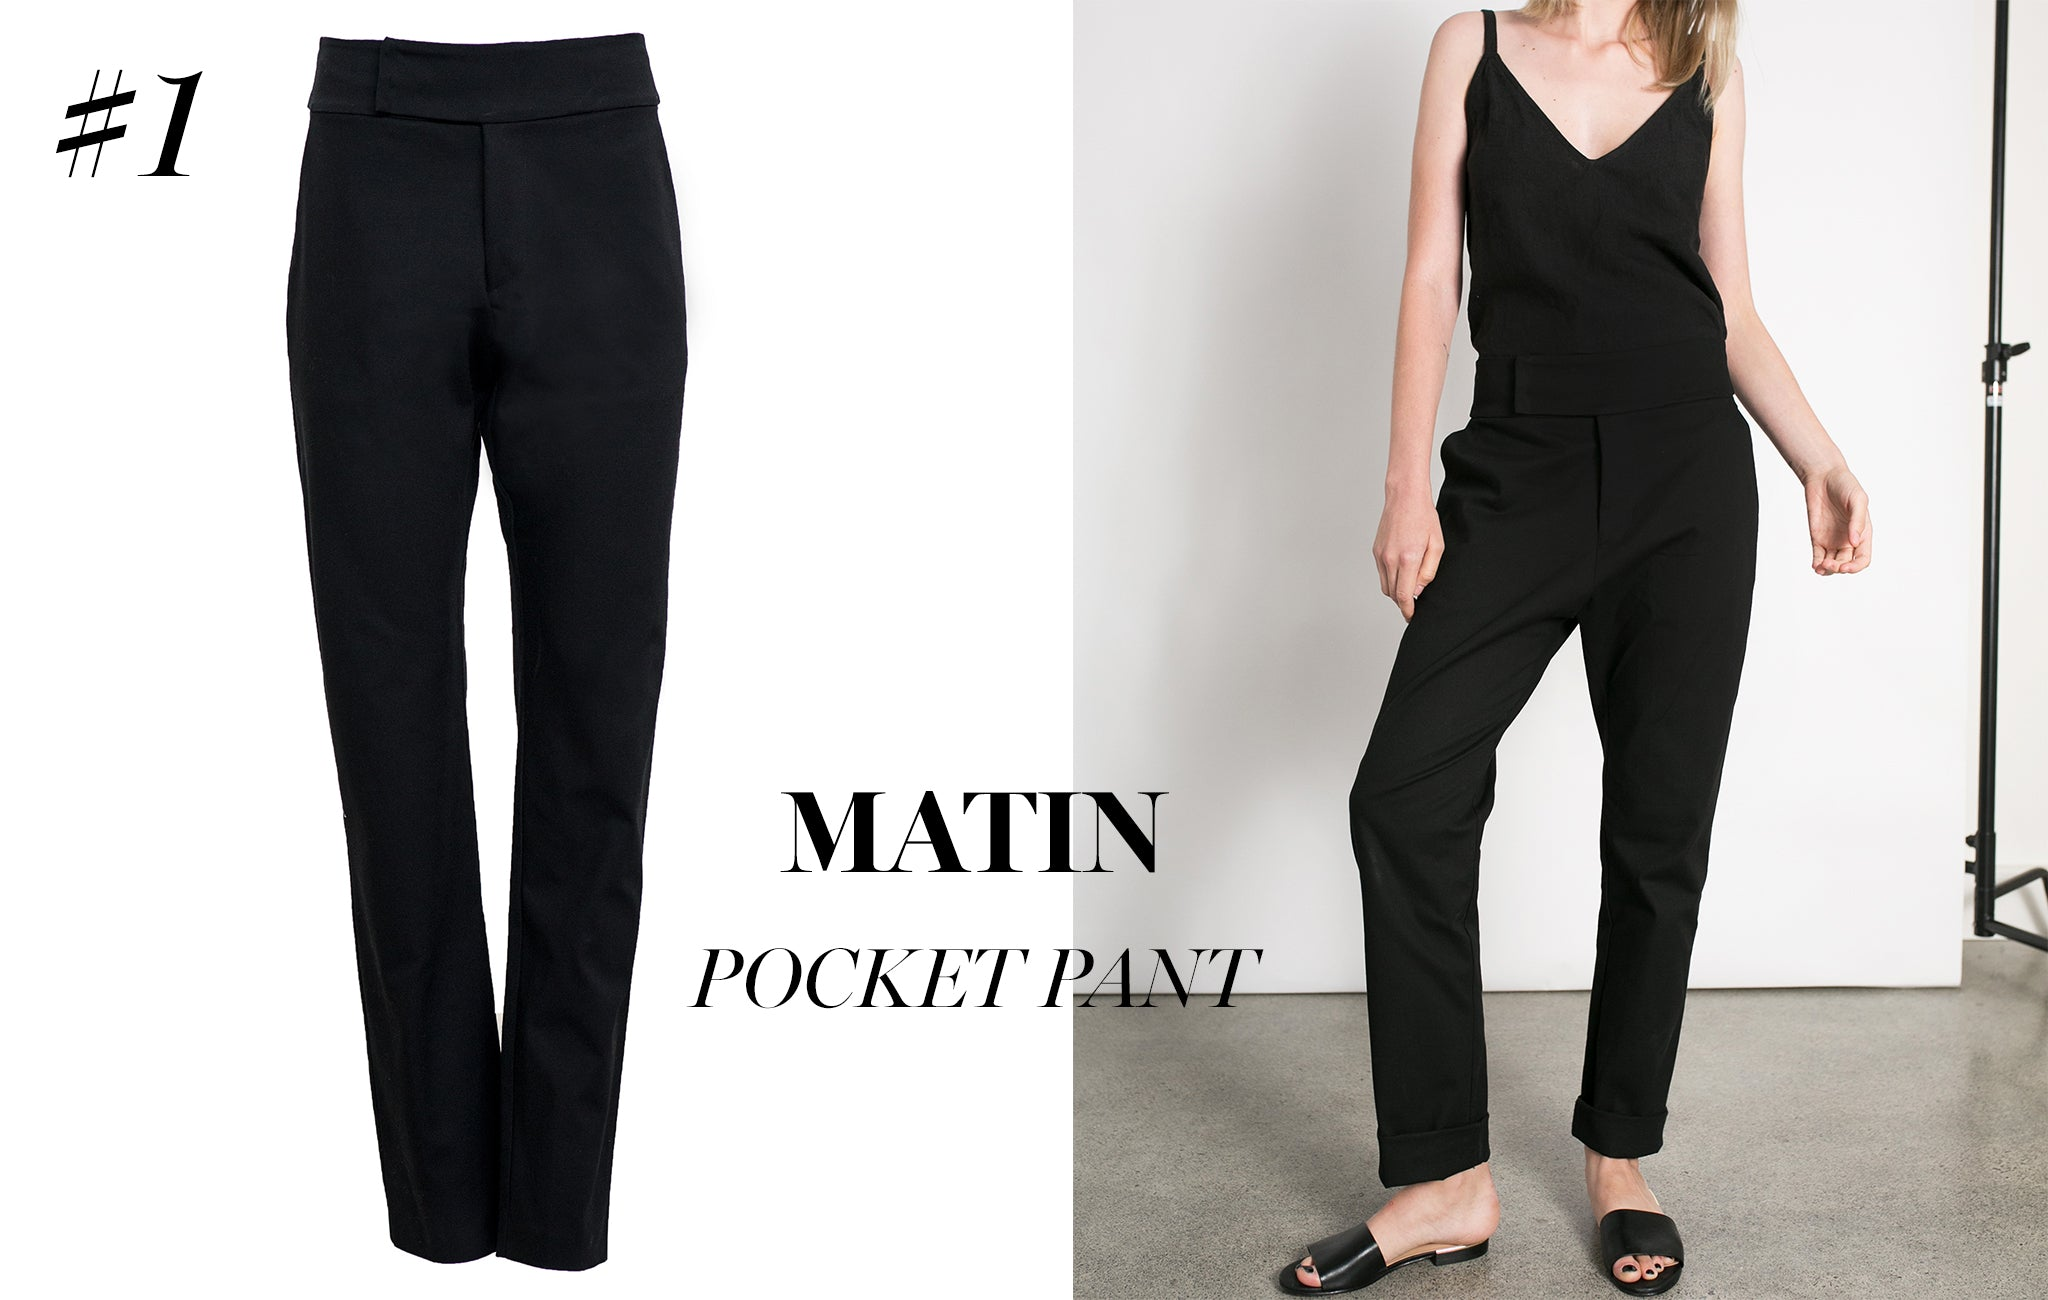 Matin Pocket Pant from The UNDONE